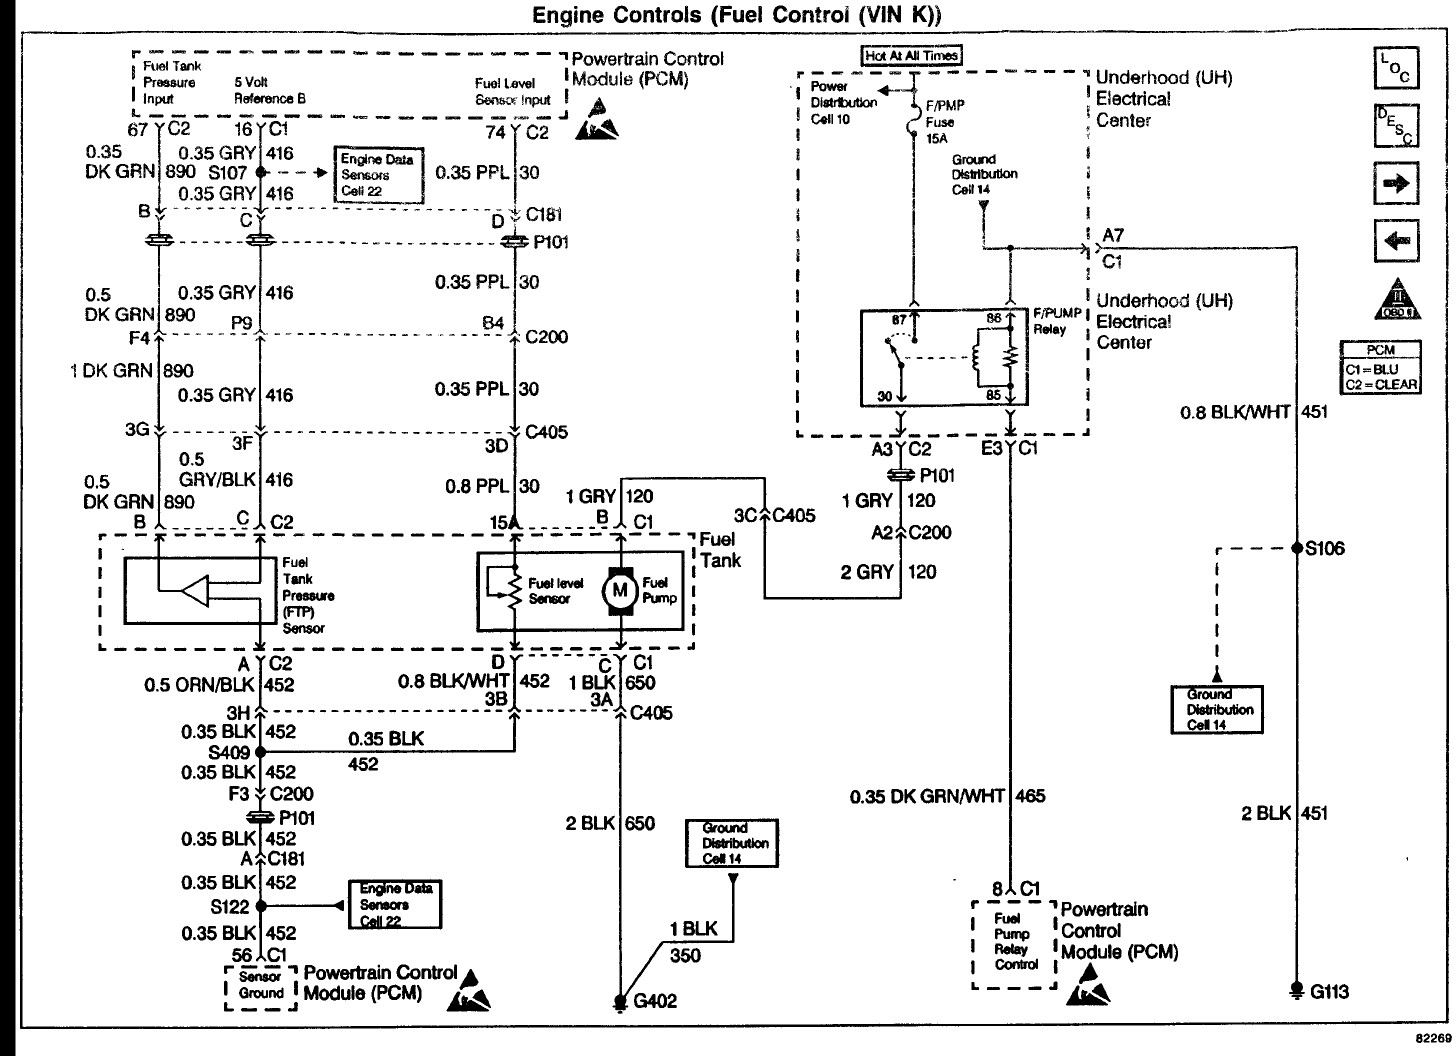 Wiring Diagram For 04 Lesabre 2004 buick lesabre radio ... on